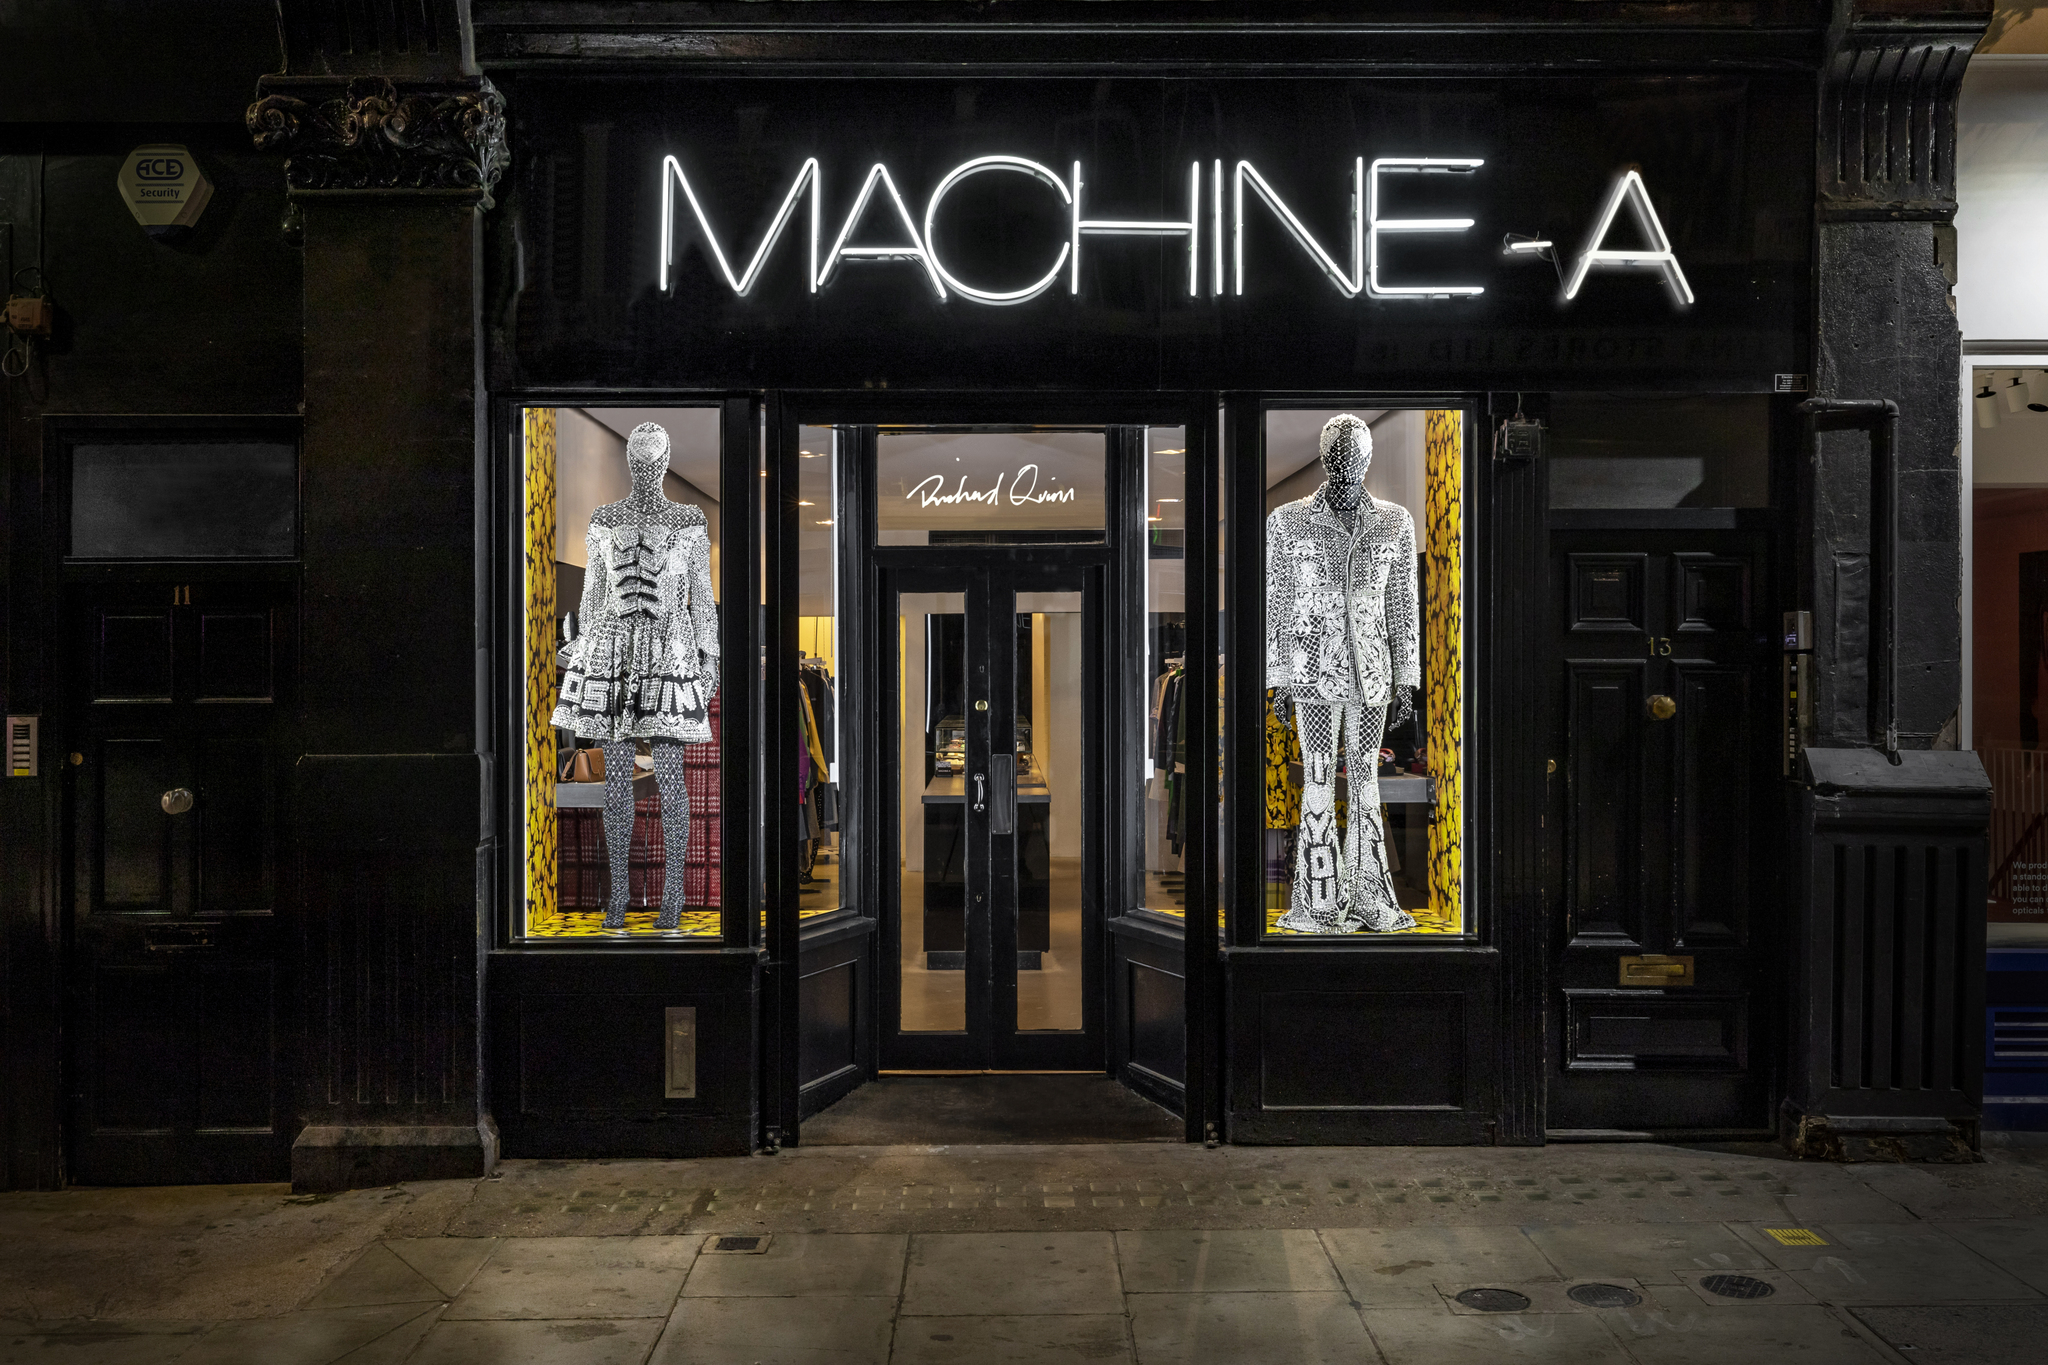 Richard Quinn window takeover at Machine-A earlier this year.